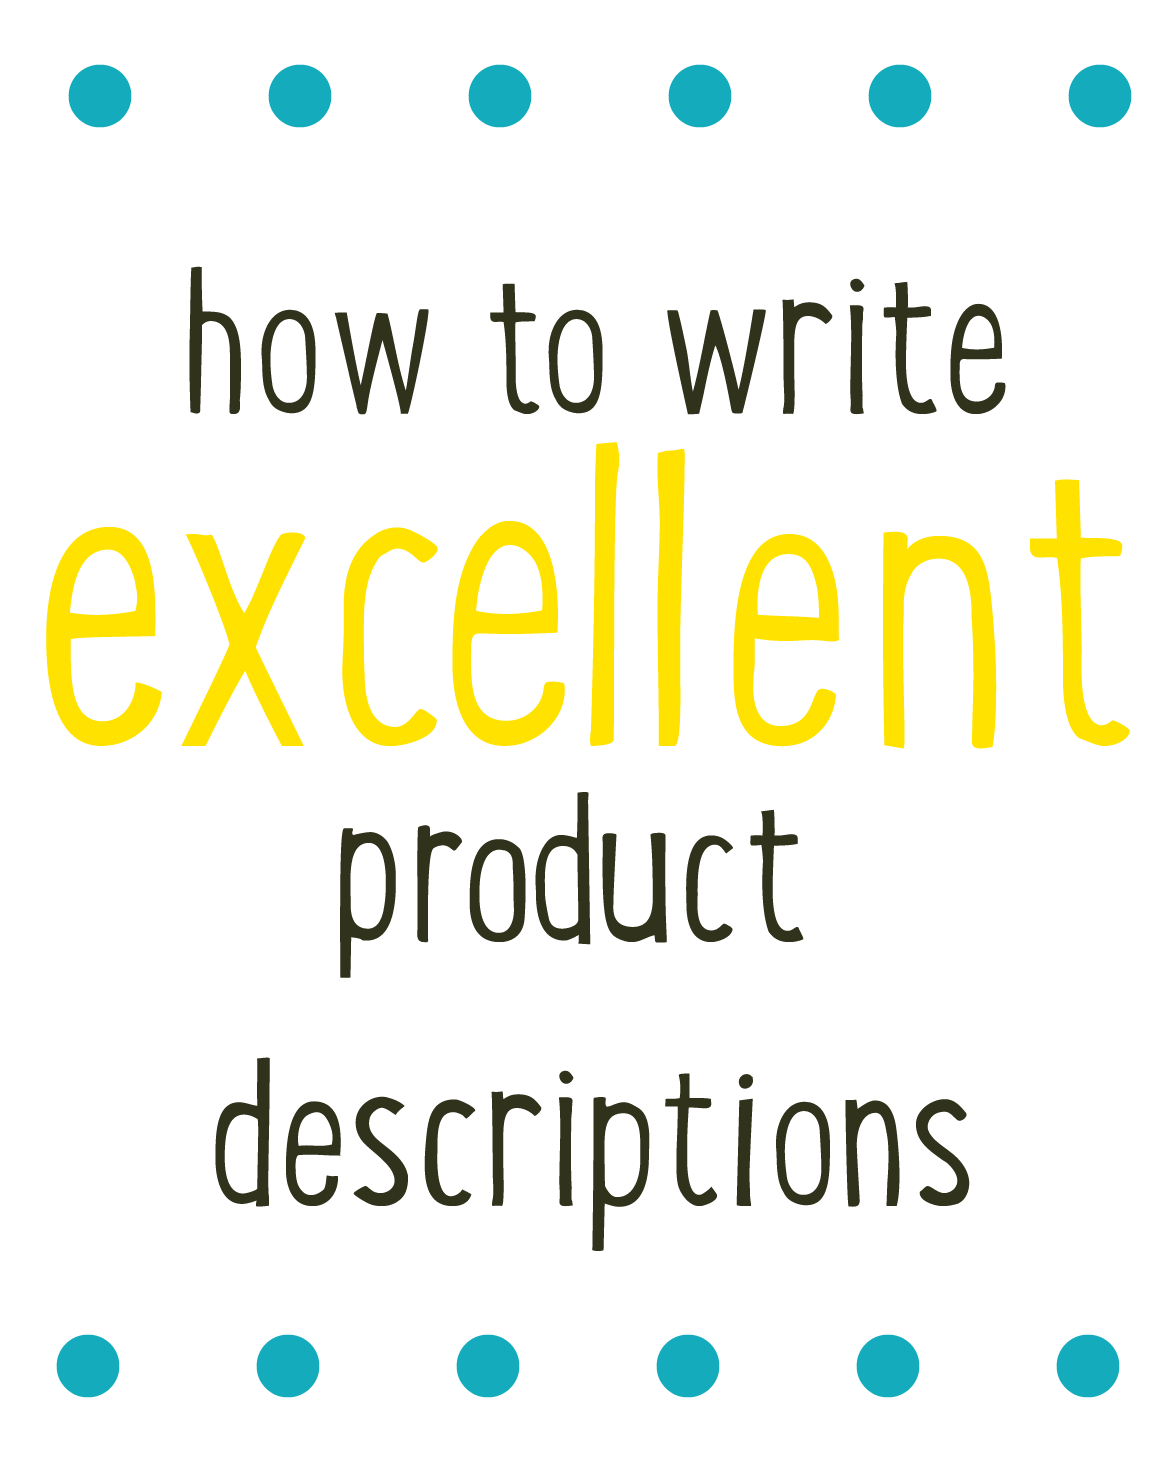 writing product descriptions It's an easy mistake even professional copywriters make it sometimes: writing product descriptions that simply describe your products why is it wrong because product descriptions need to sell your products.